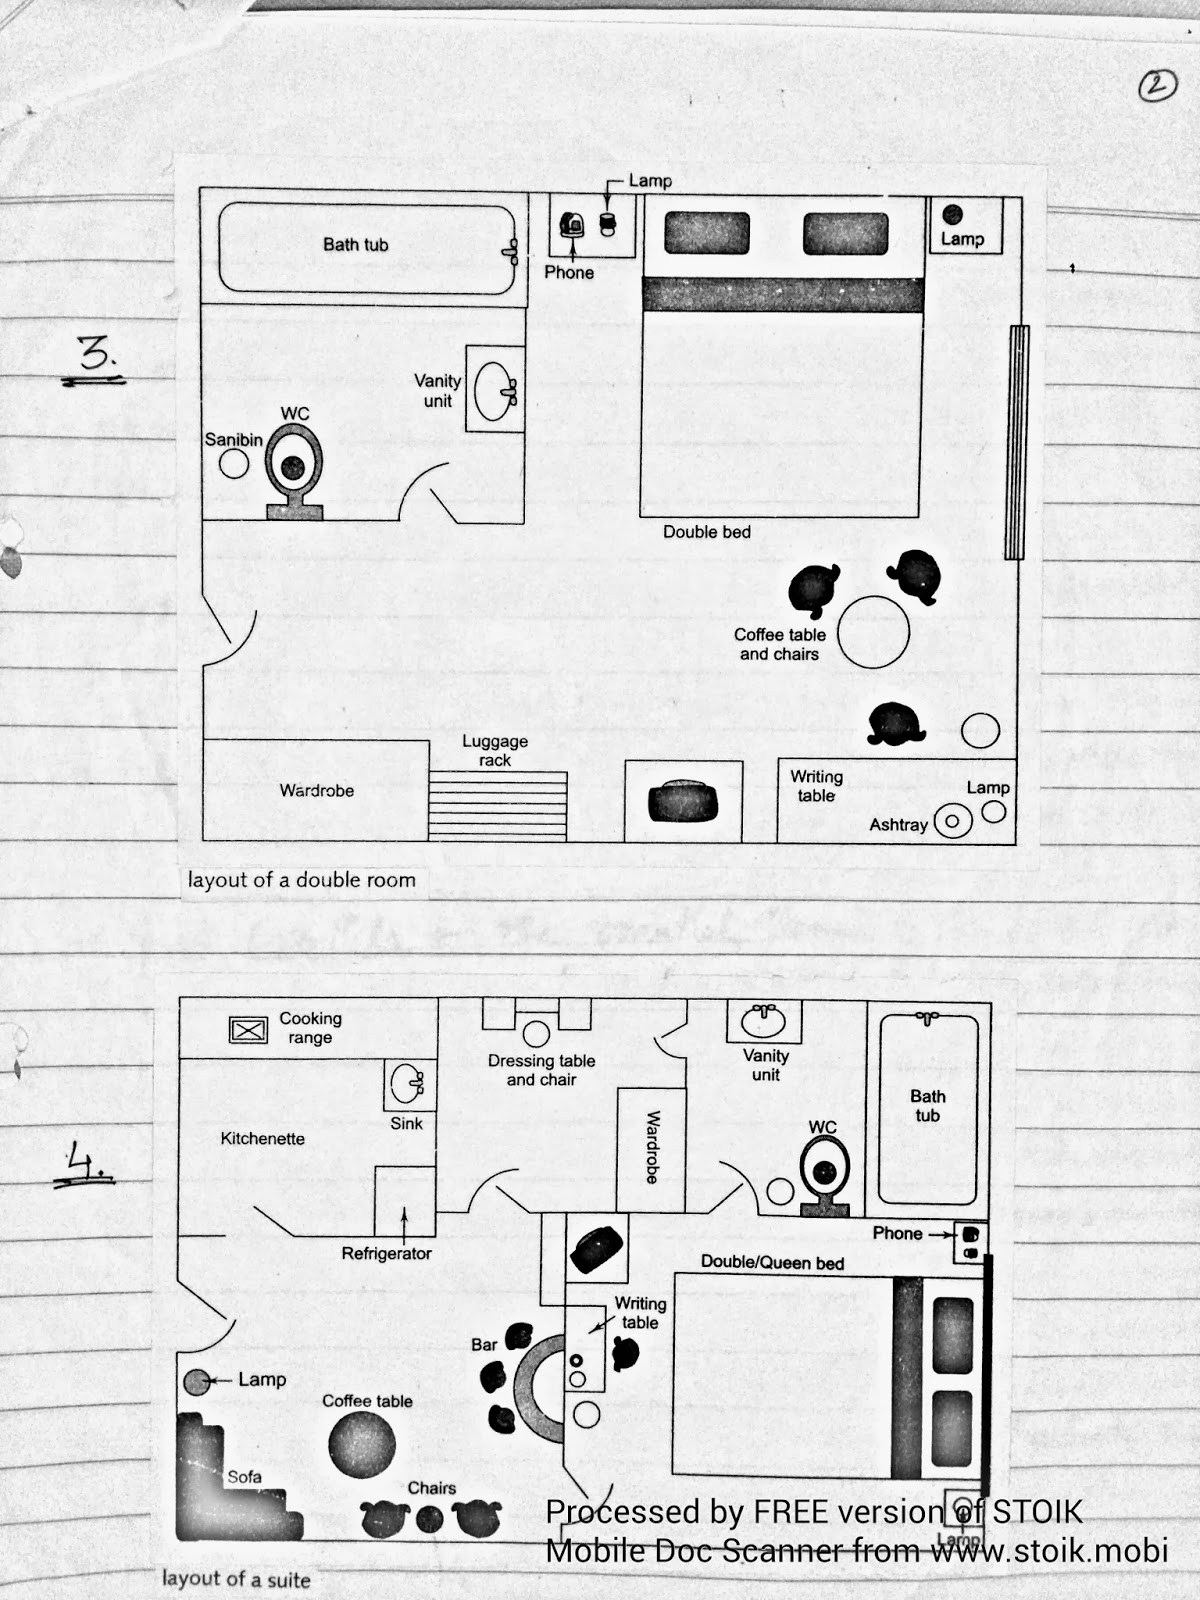 House Keeping notes: ROOM LAYOUT AND GUEST SUPPLIES